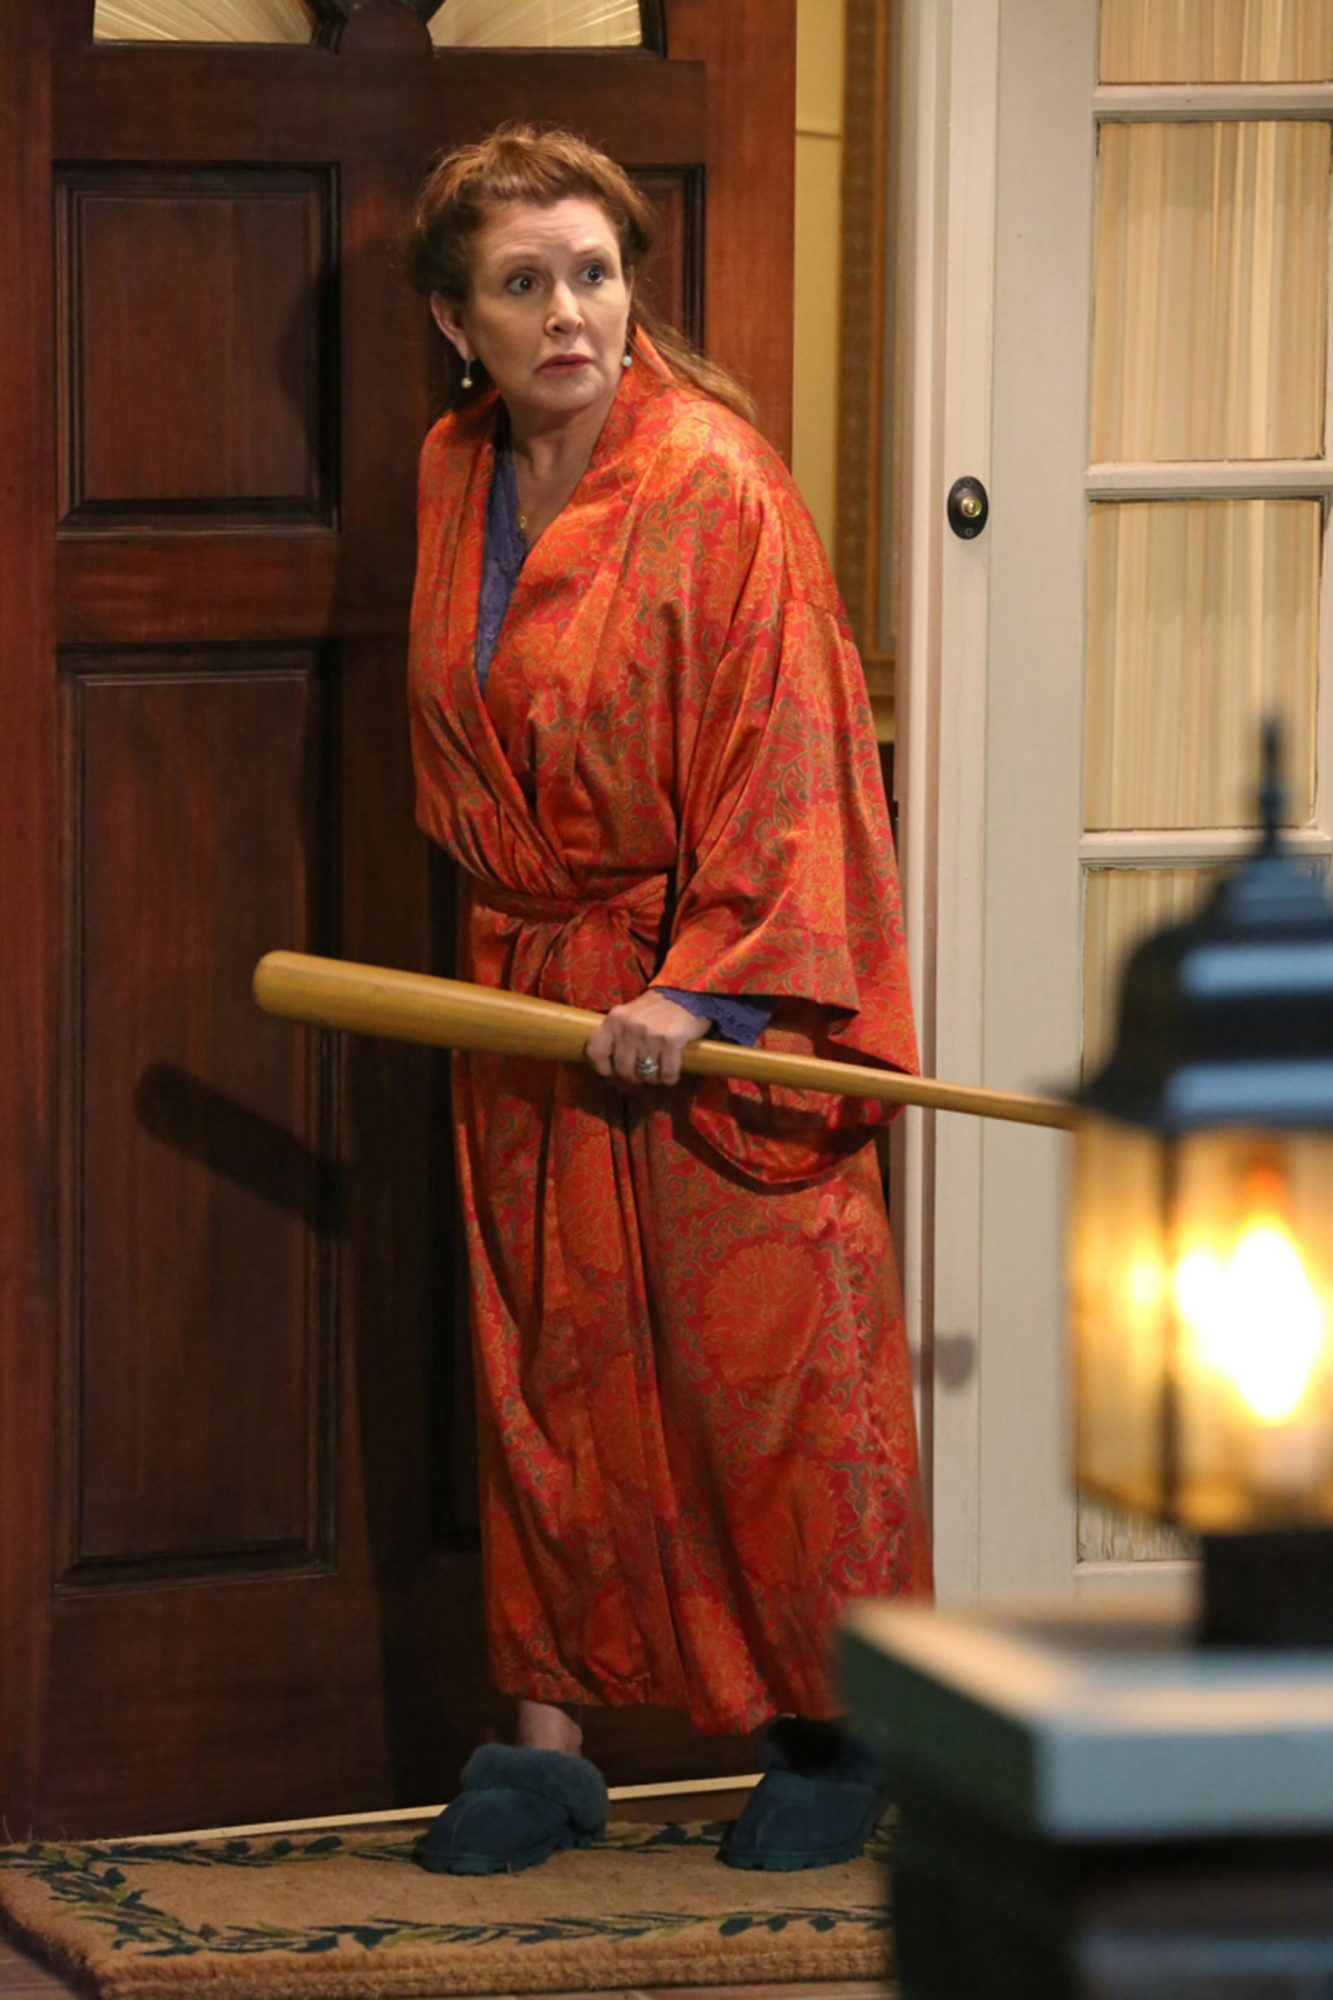 THE BIG BANG THEORY CARRIE FISHER